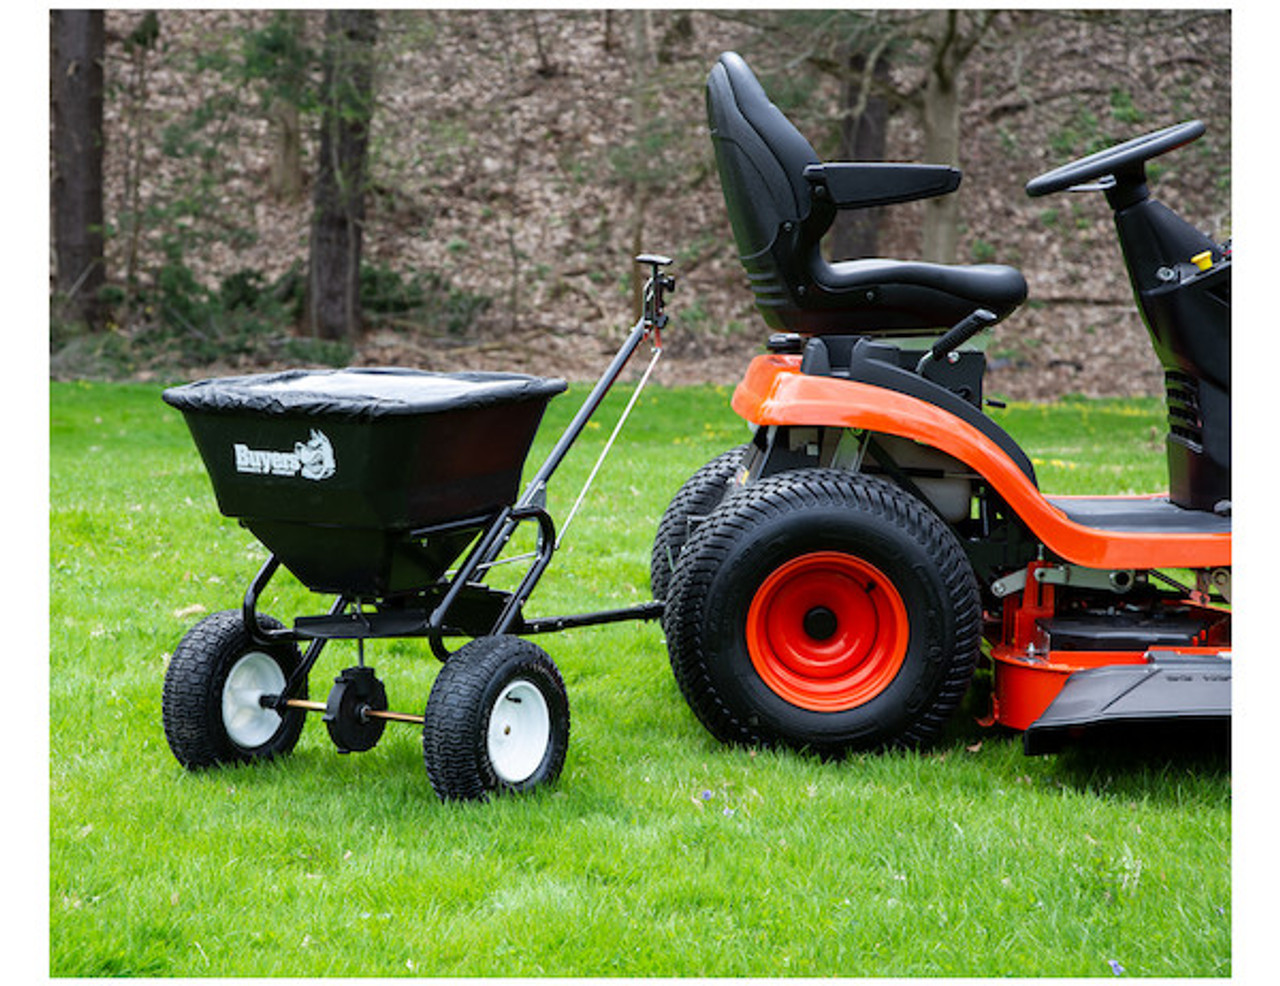 Buyers TB150BG Tow Behind Broadcast Spreader for small tractors, utility vehicles and ATVs Picture # 2